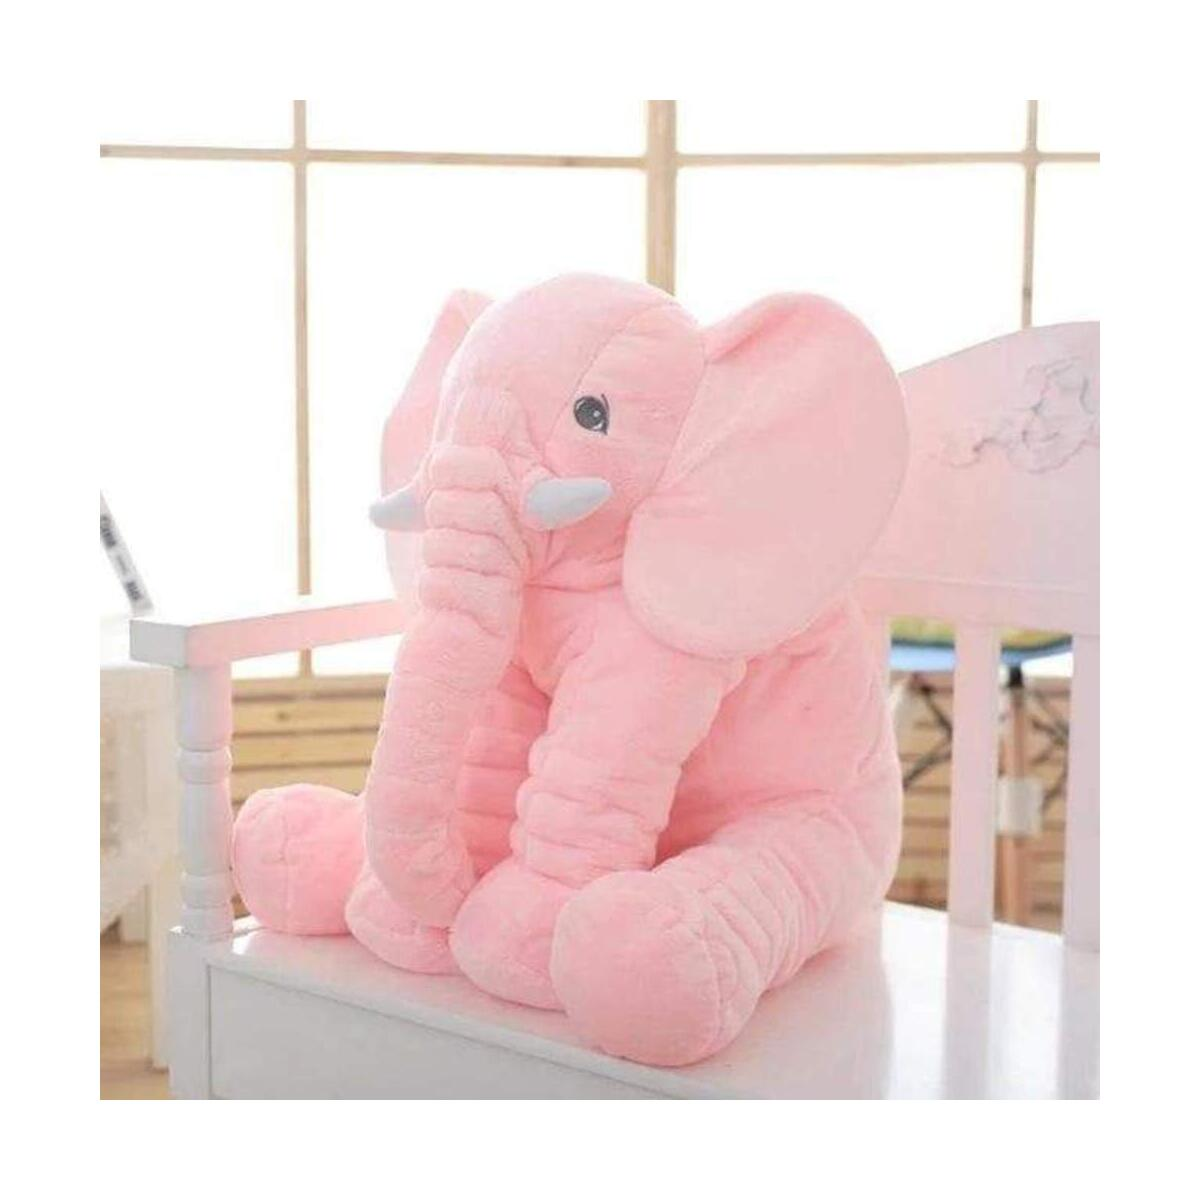 Baby Elephant Cushion Cute Stuffed Animals Pillow Kids Sleeping Back Cushion Toy